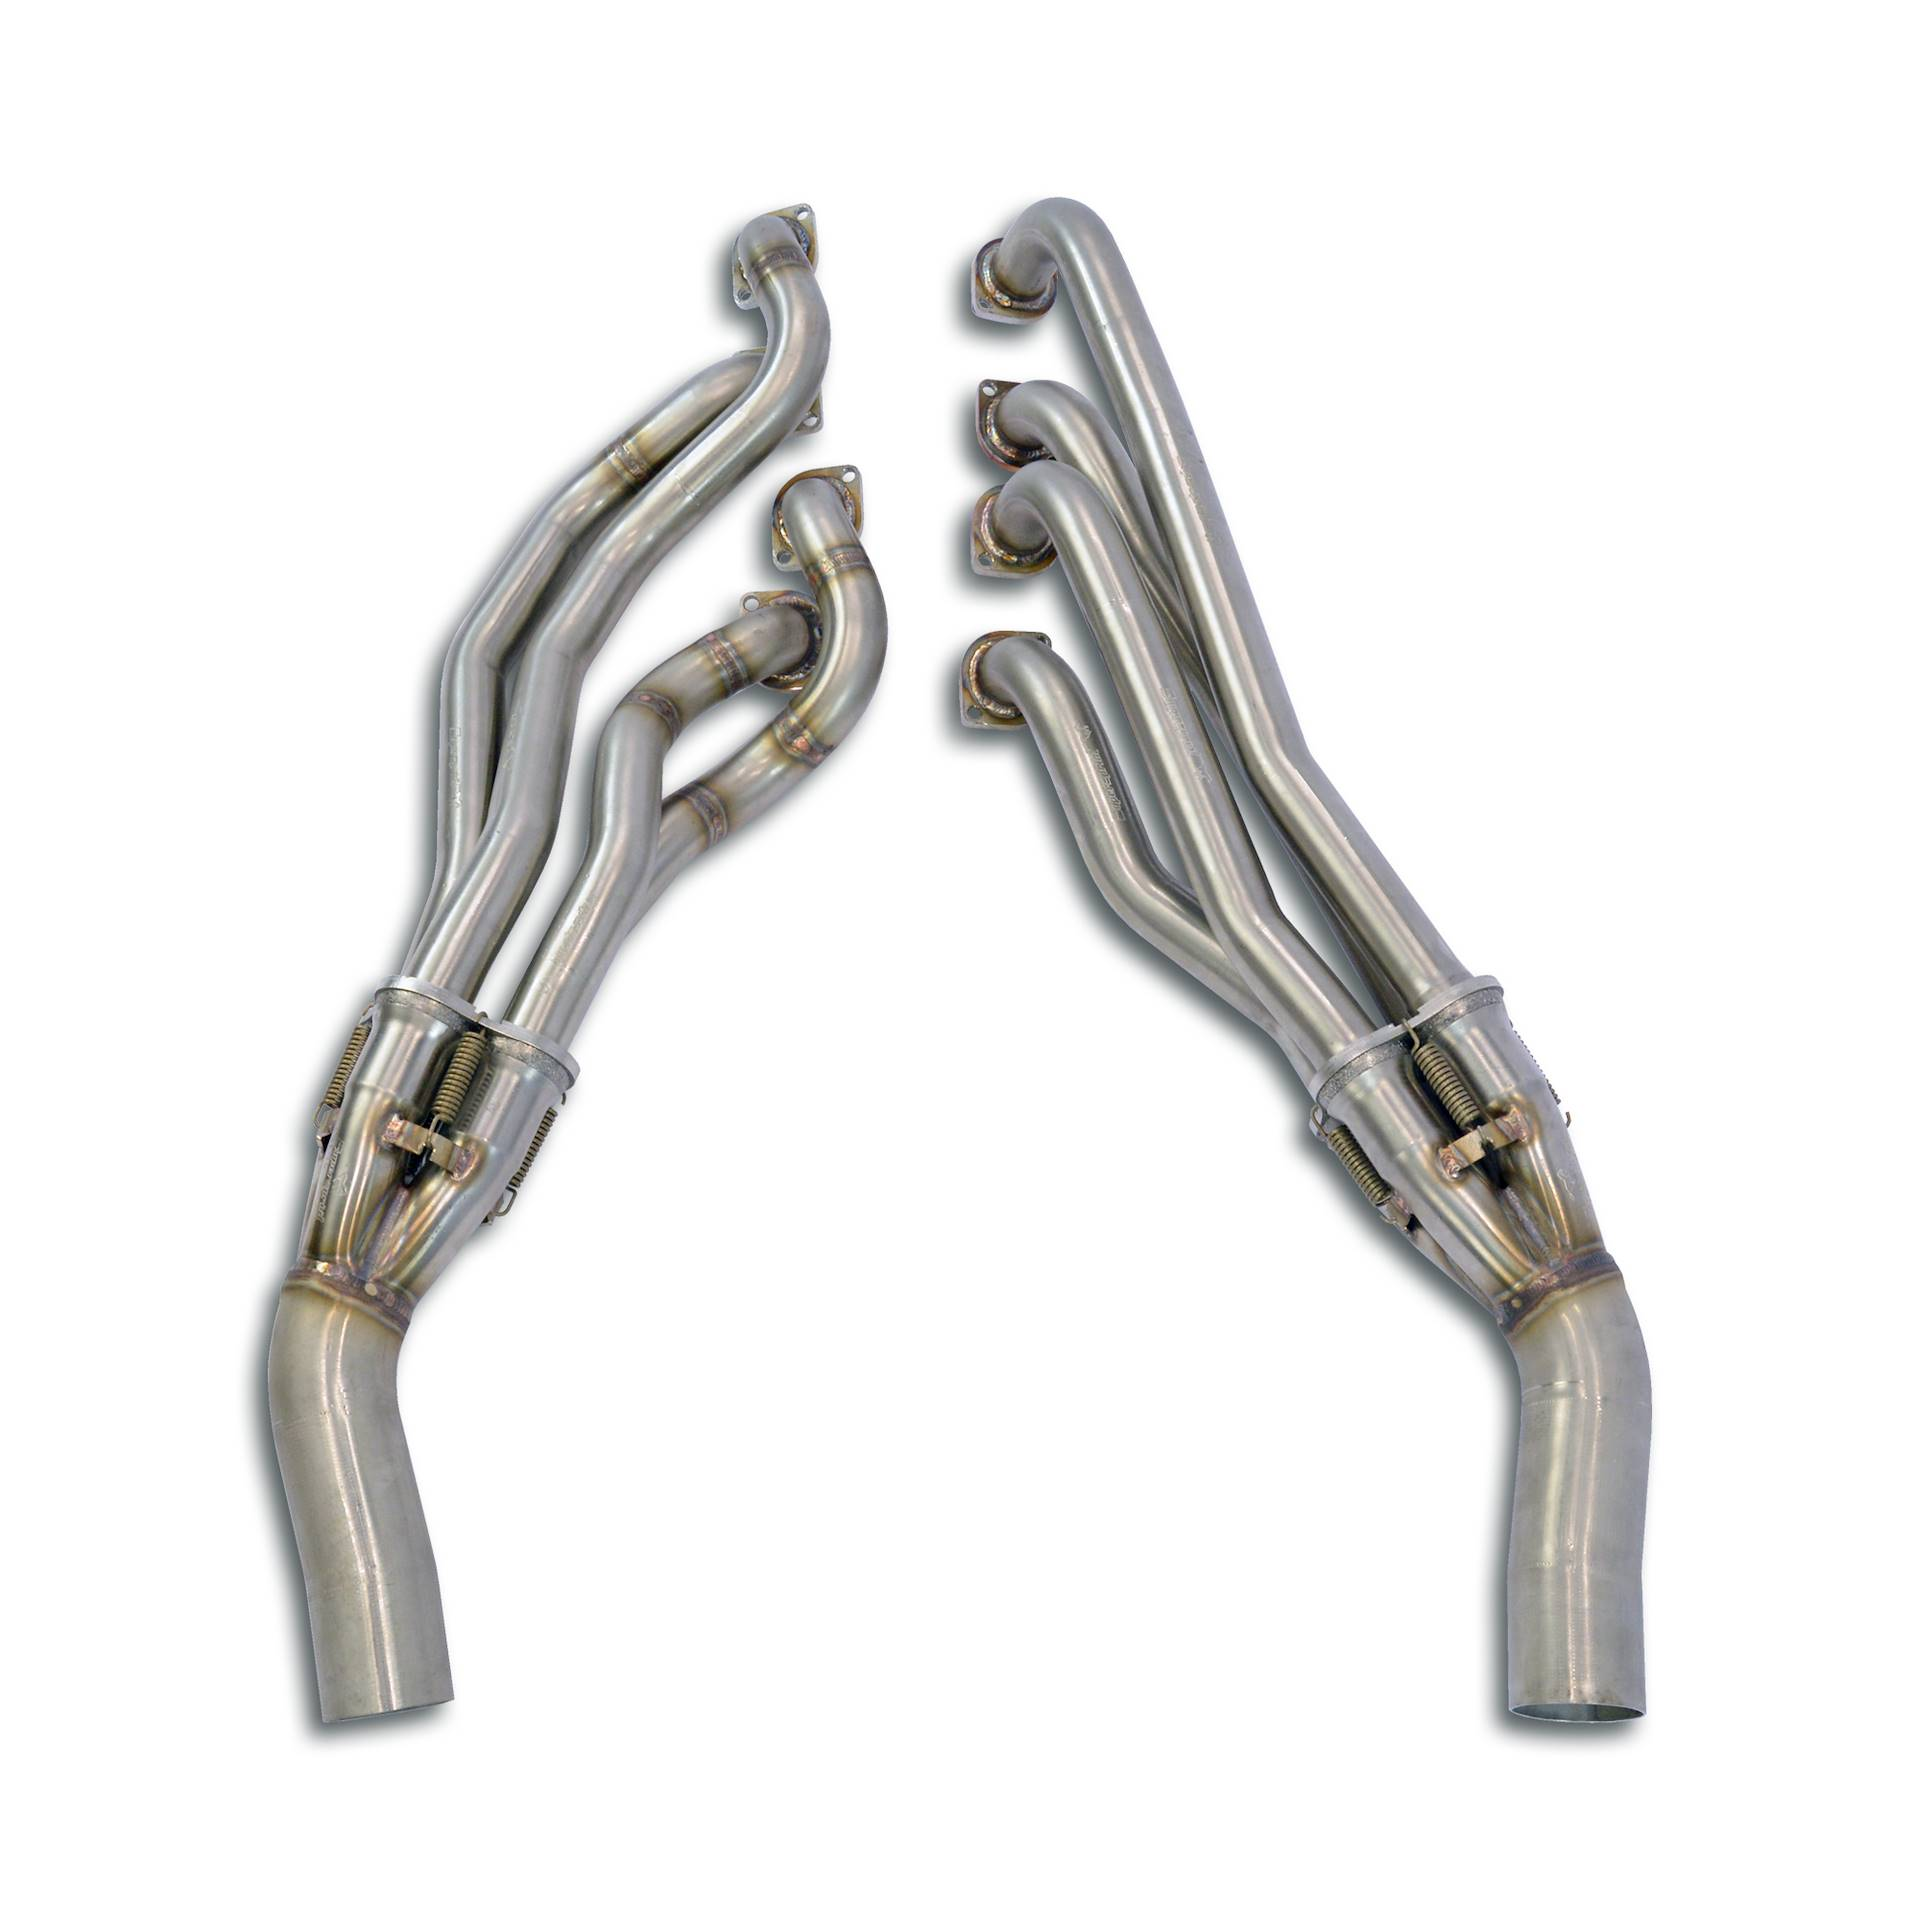 Performance sport exhaust for BMW E39 Touring 540i Dual-Pipe